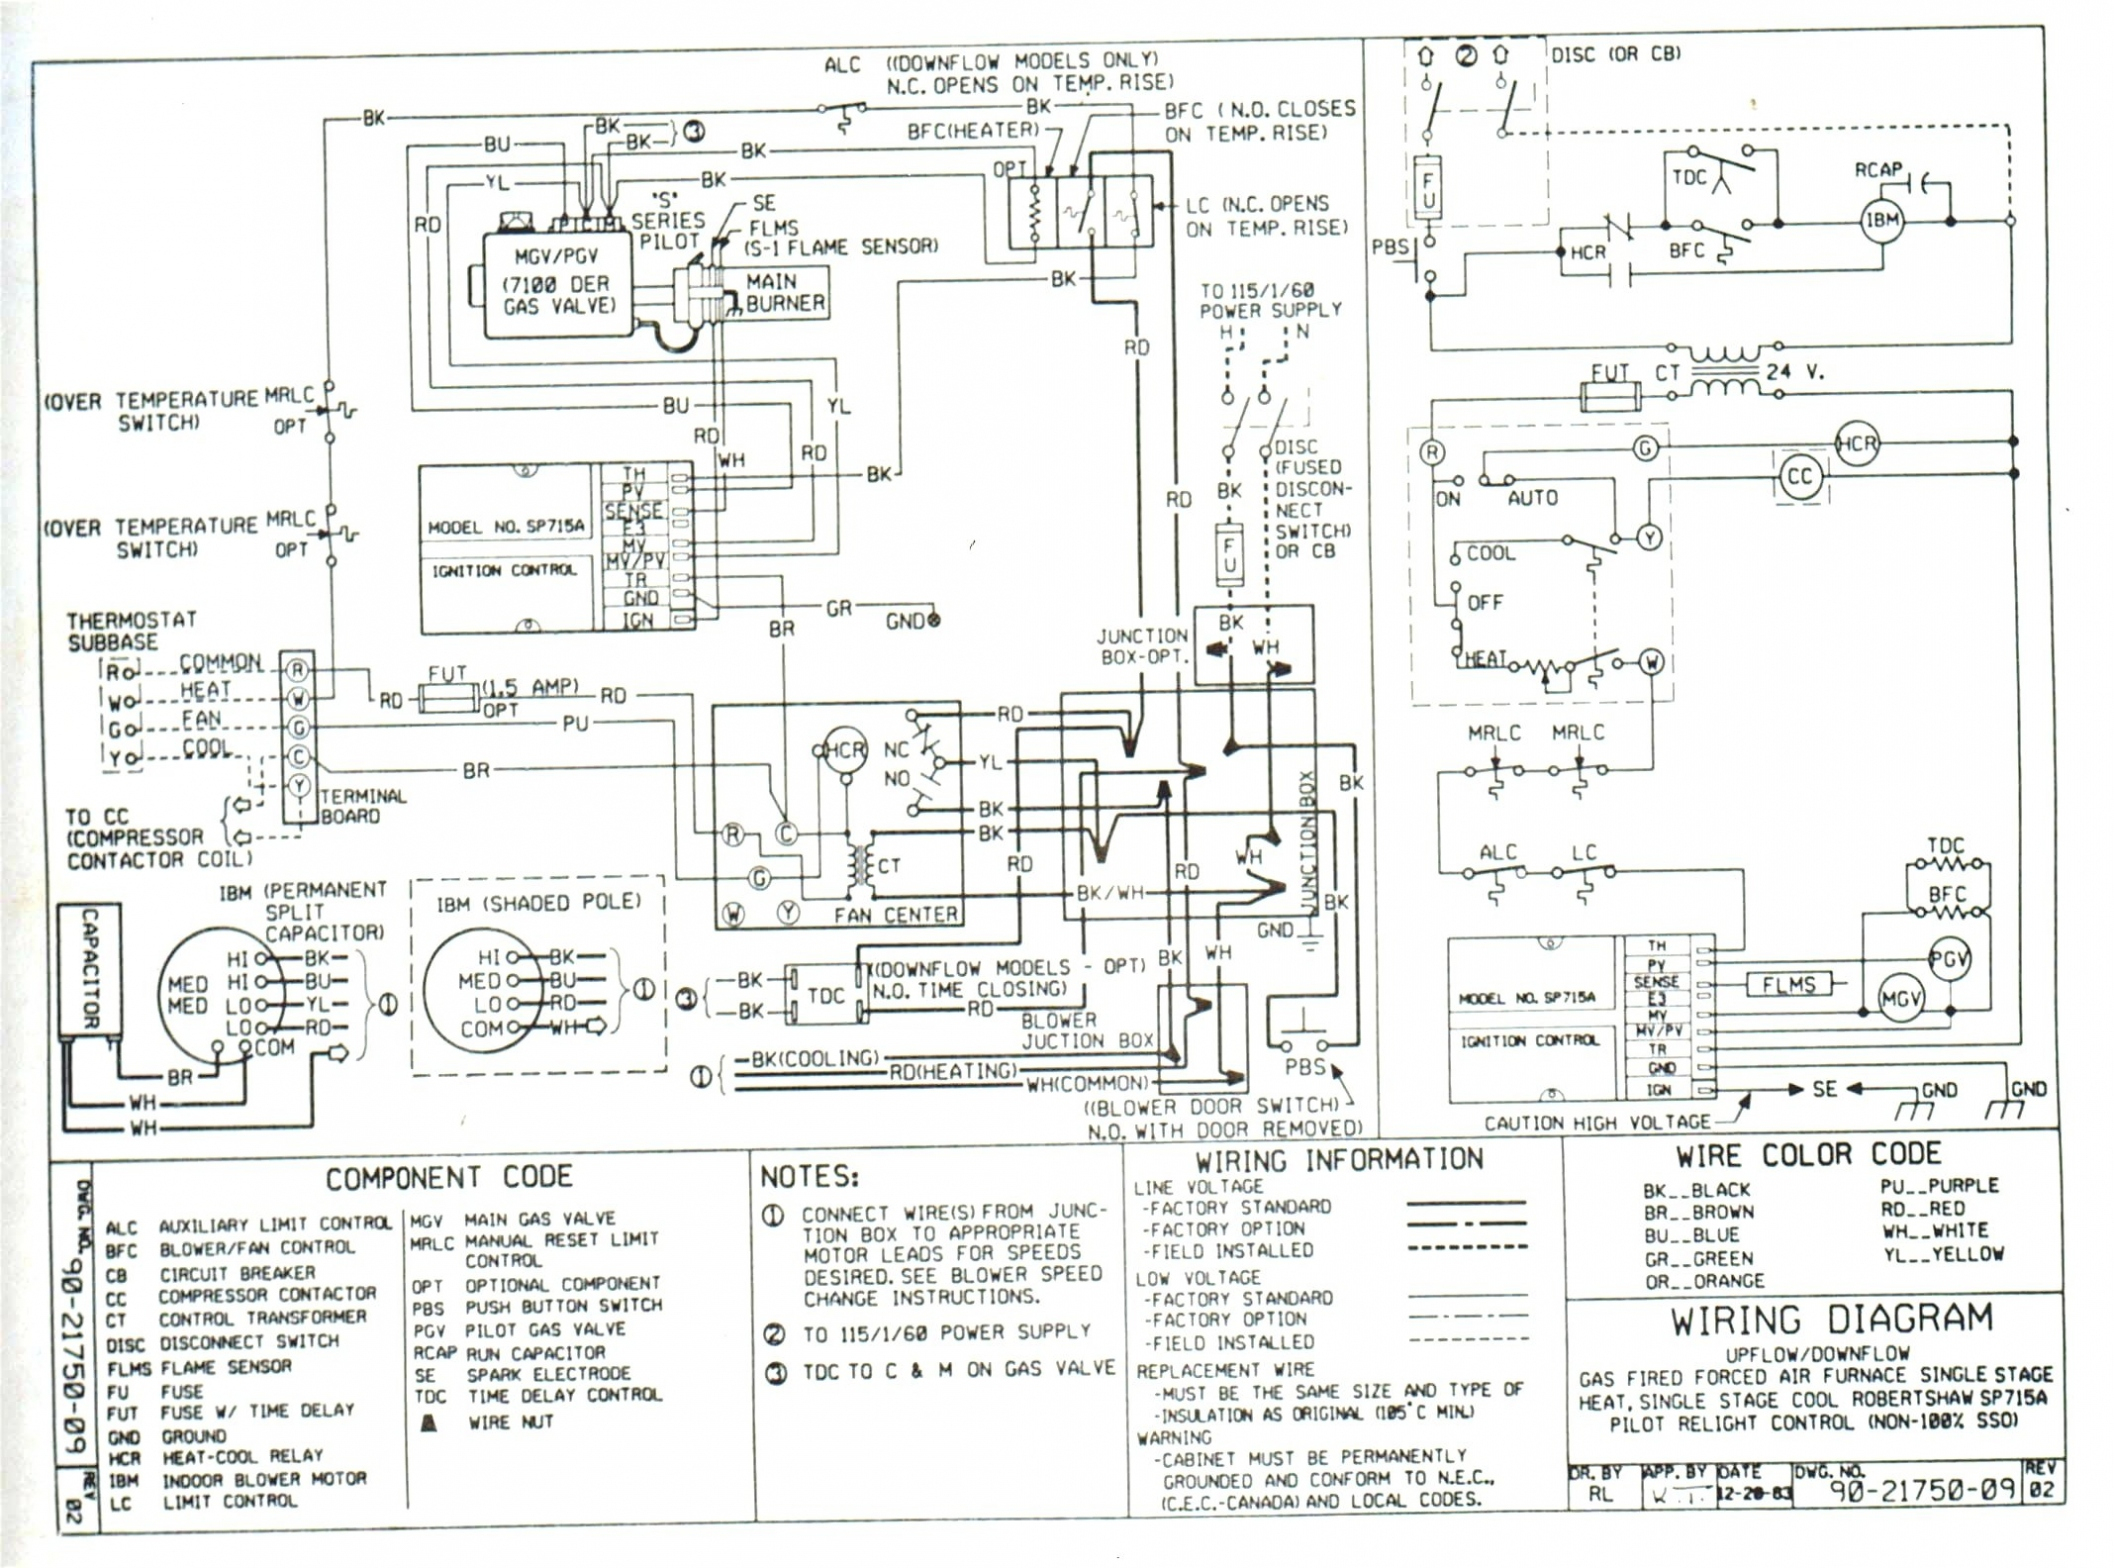 Goodman Air Handler Fan Relay Wiring Diagram Free Picture | Wiring - Air Handler Fan Relay Wiring Diagram